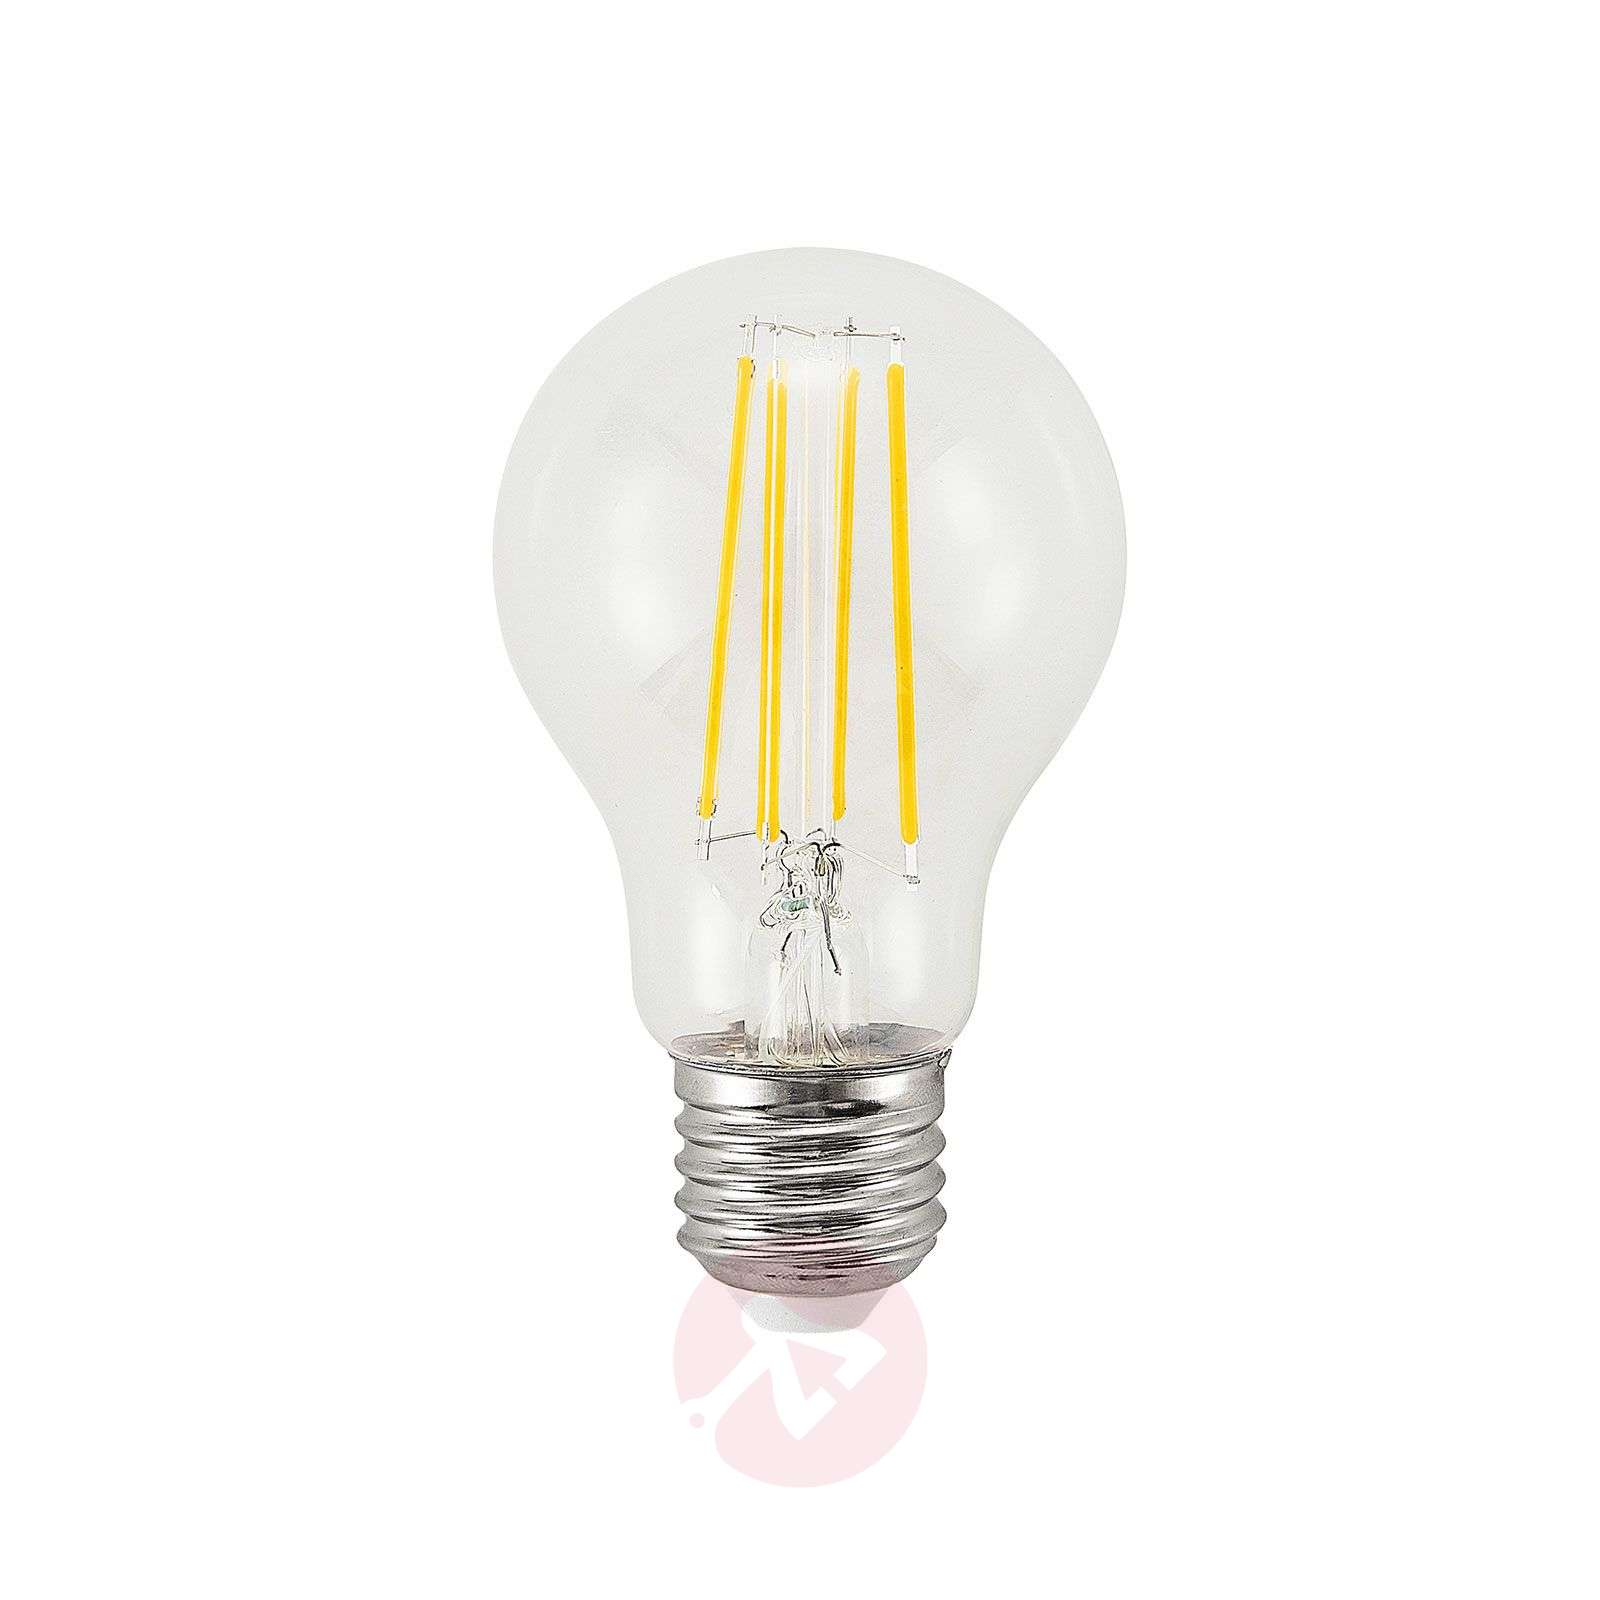 Ampoule LED E27 7 W filament blanc chaud-9971021-01